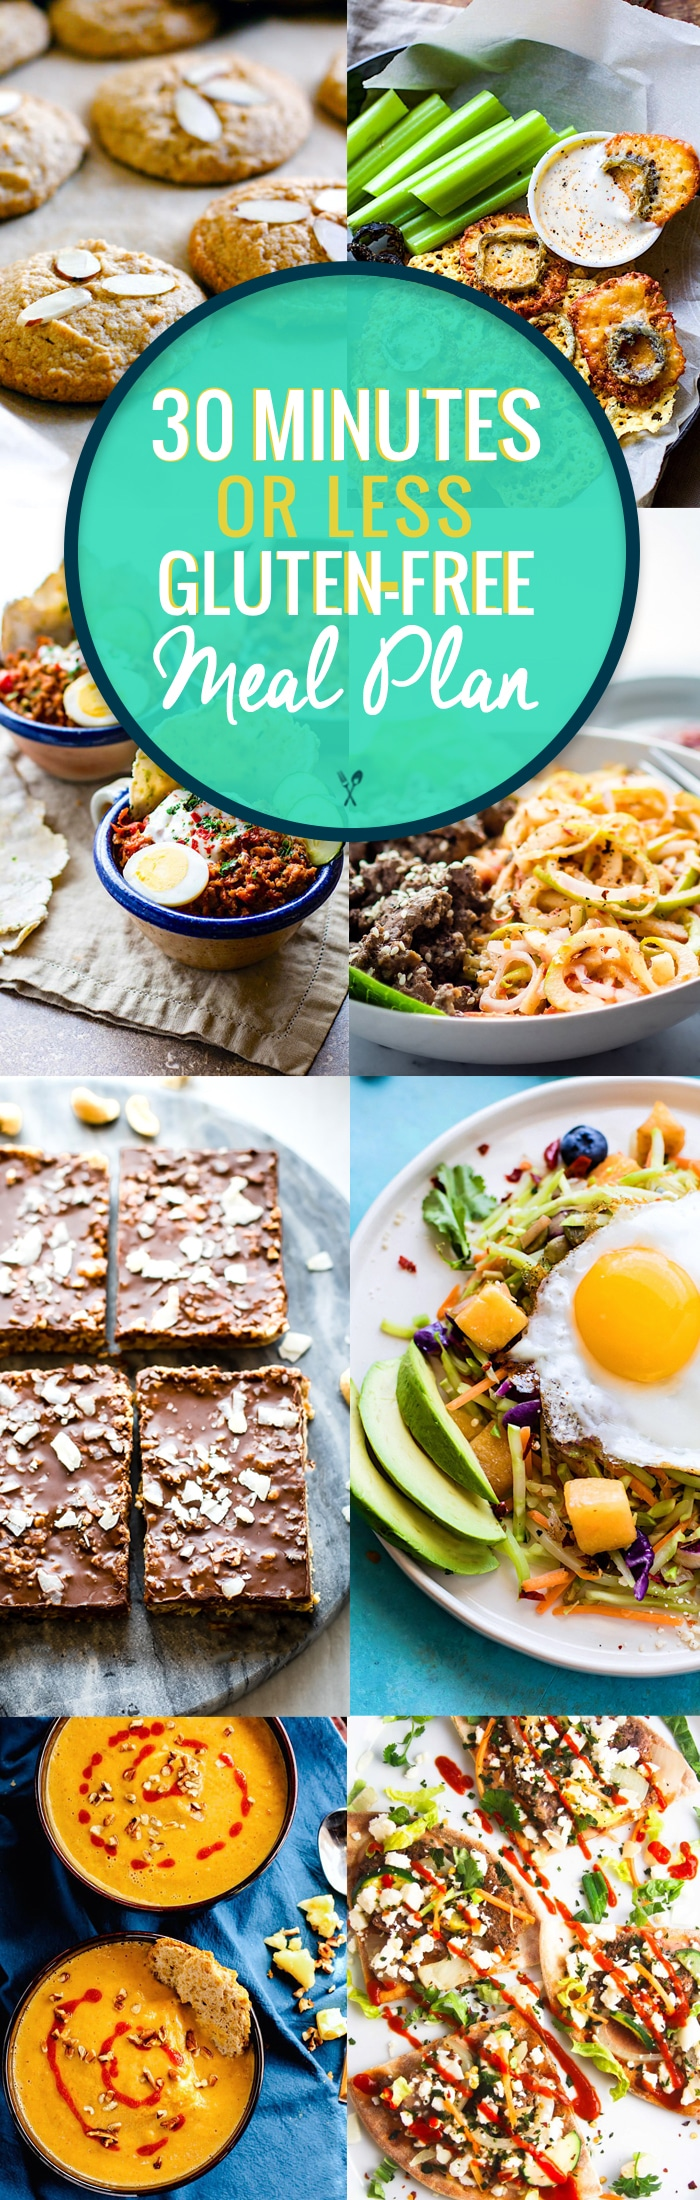 A gluten free meal plan with recipes that are quick and healthy! 30 minutes is all you need to make these simple gluten free meal plan recipes! Great for meal prep and holiday planning. Easy and delicious meals, snacks, and desserts. #MEALPLAN #GLUTENFREE